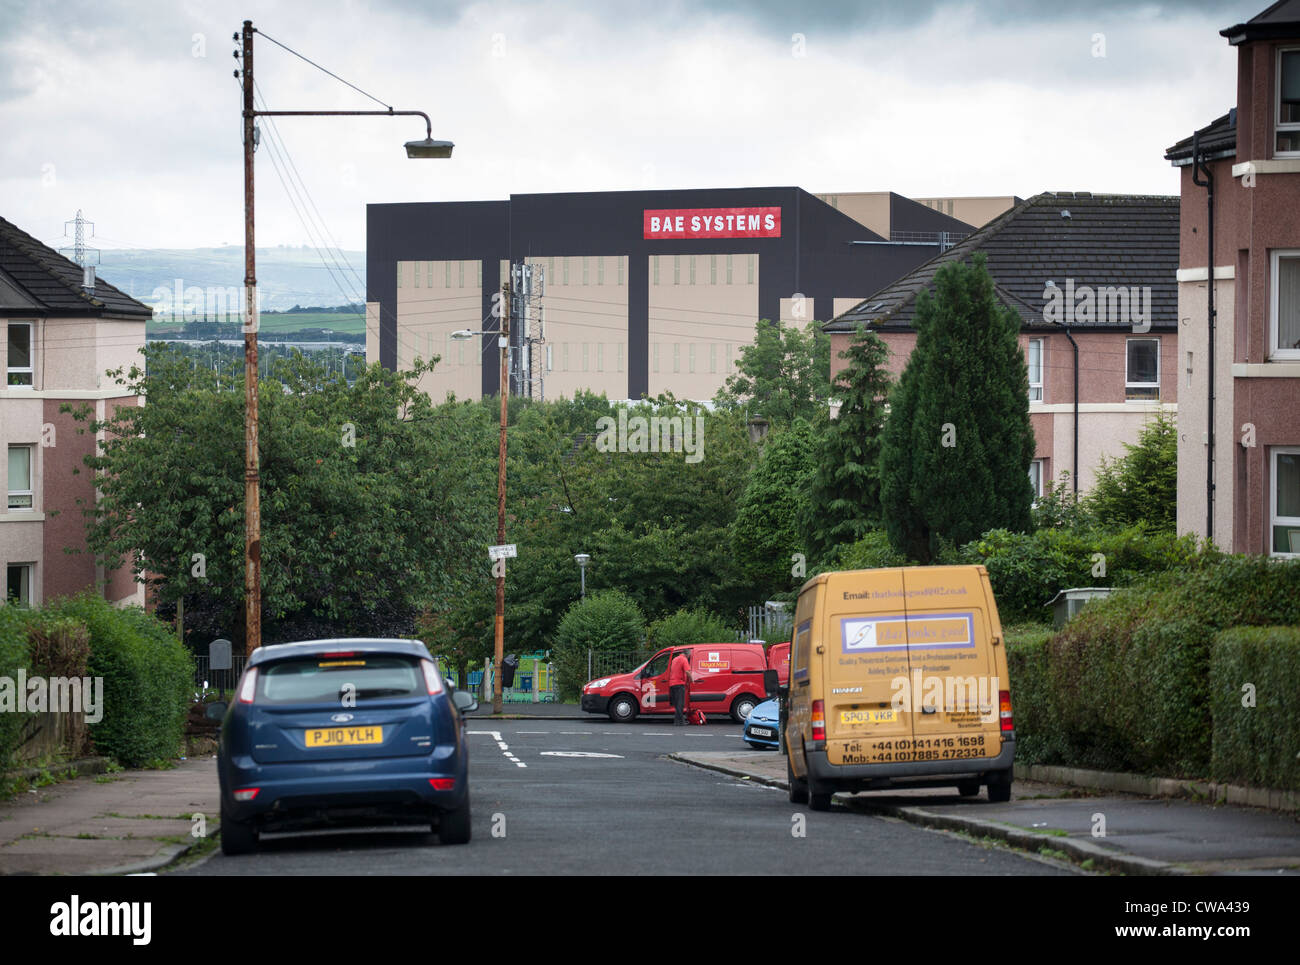 A view of the BAE Systems complex on the river Clyde from the Scotstounhill area of Glasgow. - Stock Image